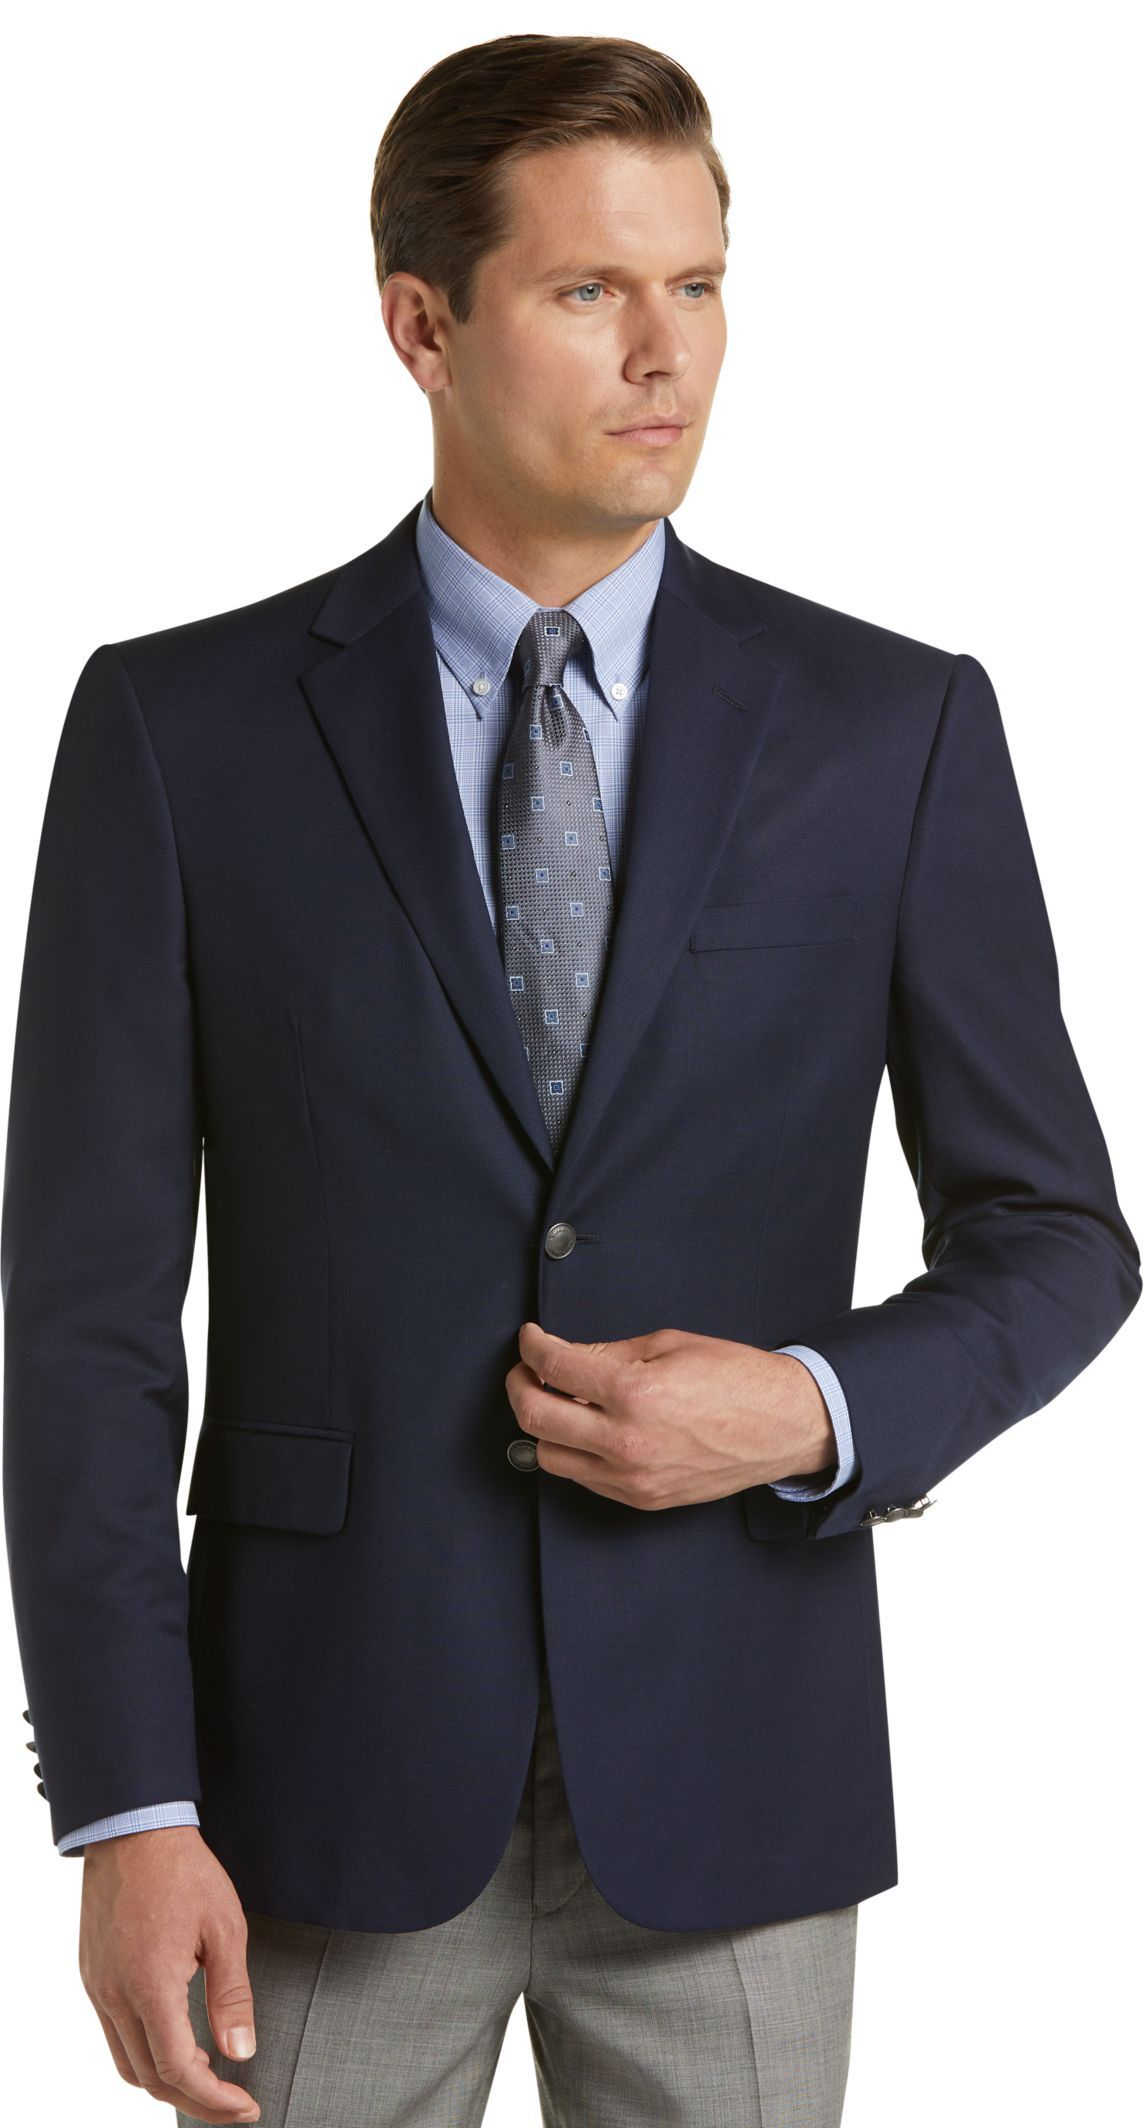 Traveler Collection Tailored Fit Blazer Big & Tall